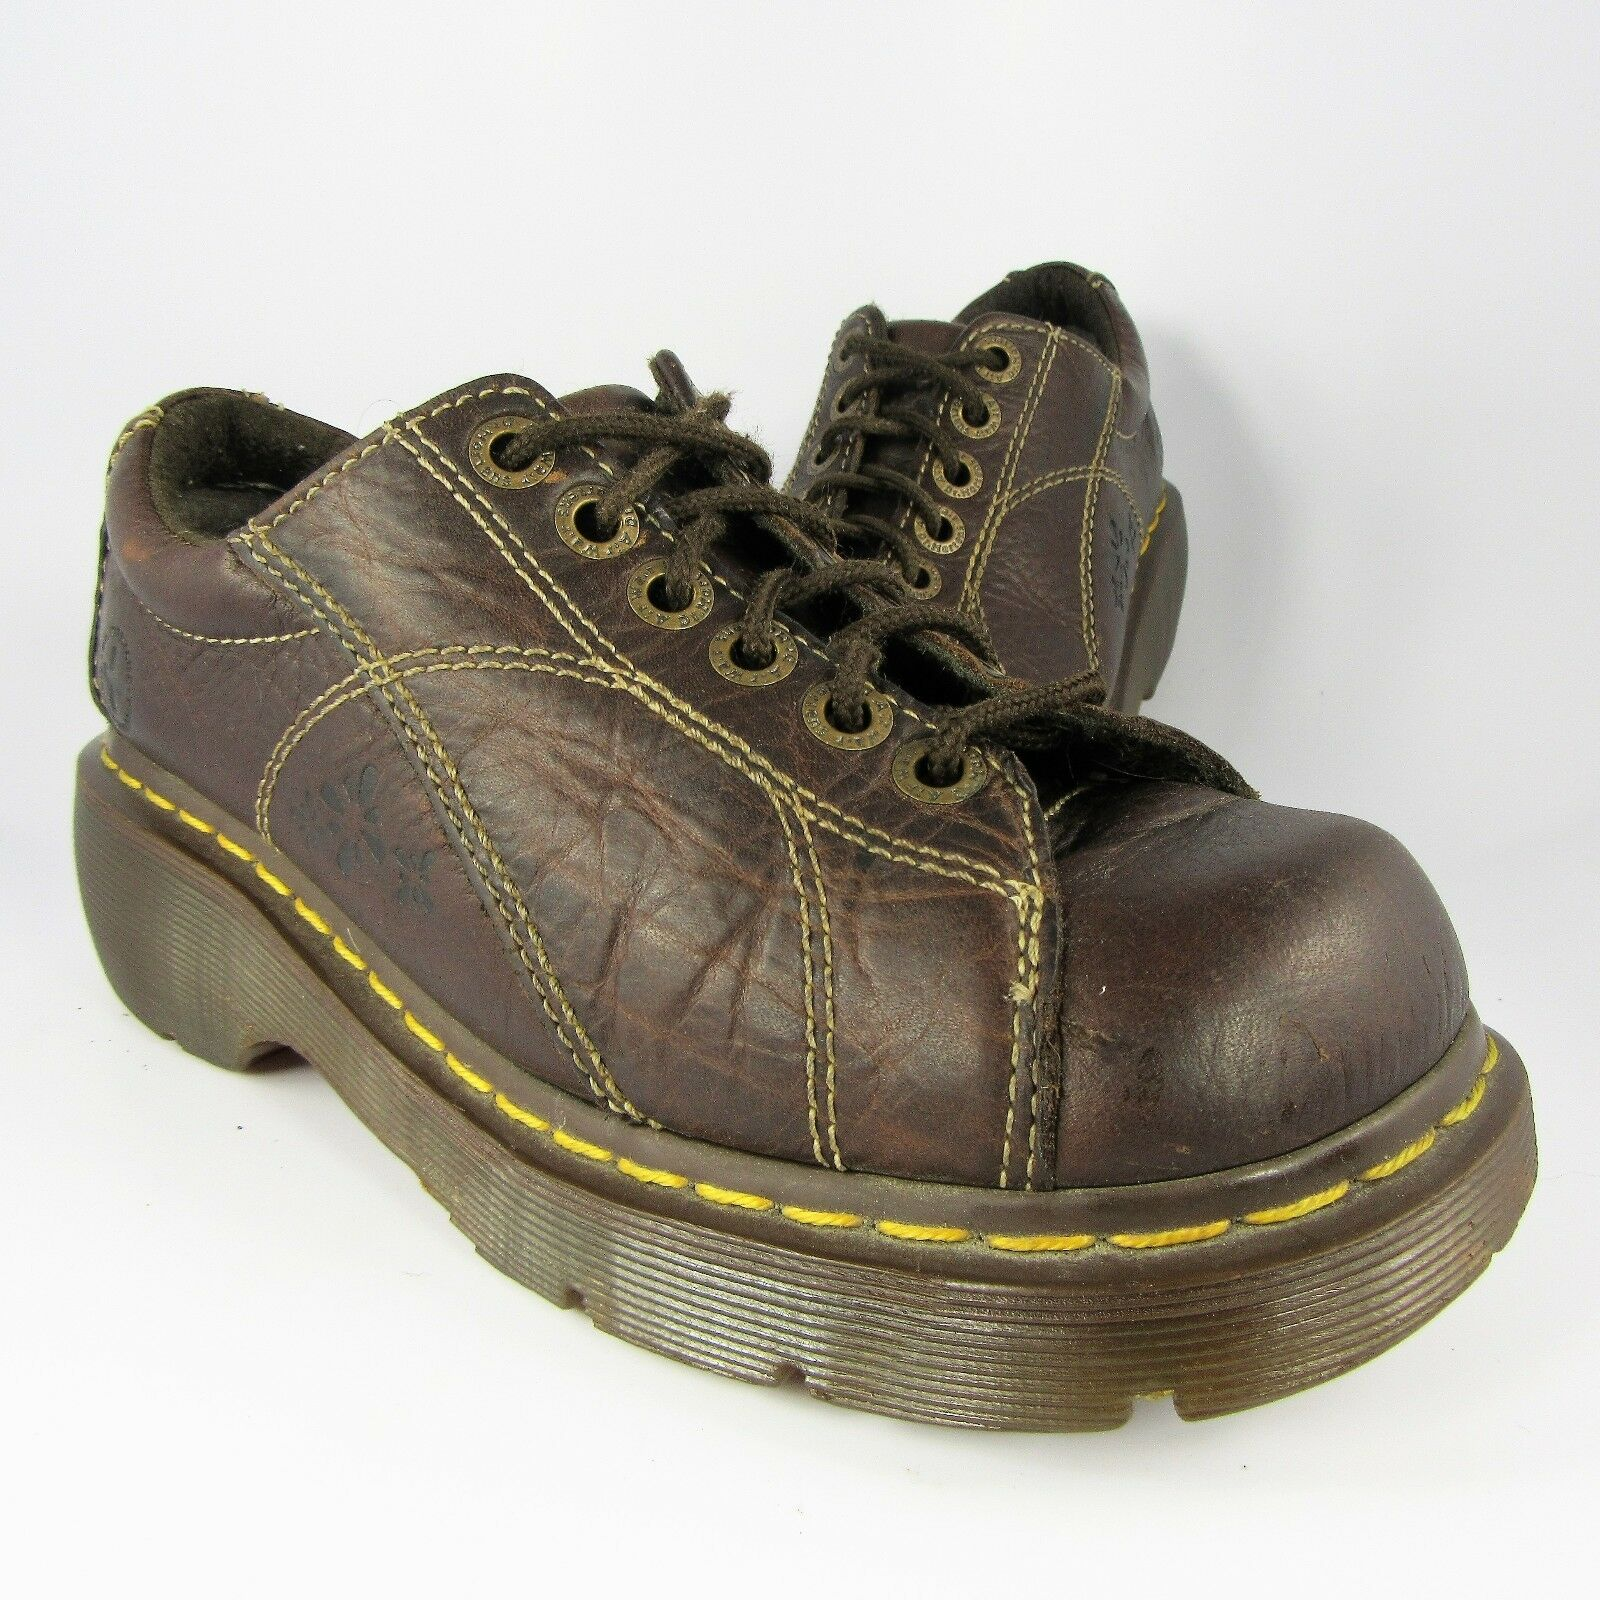 Dr DOC Martens Air-Cushion Oxfords Womens Size 7M Flat-Brown Leather Lace-Ups